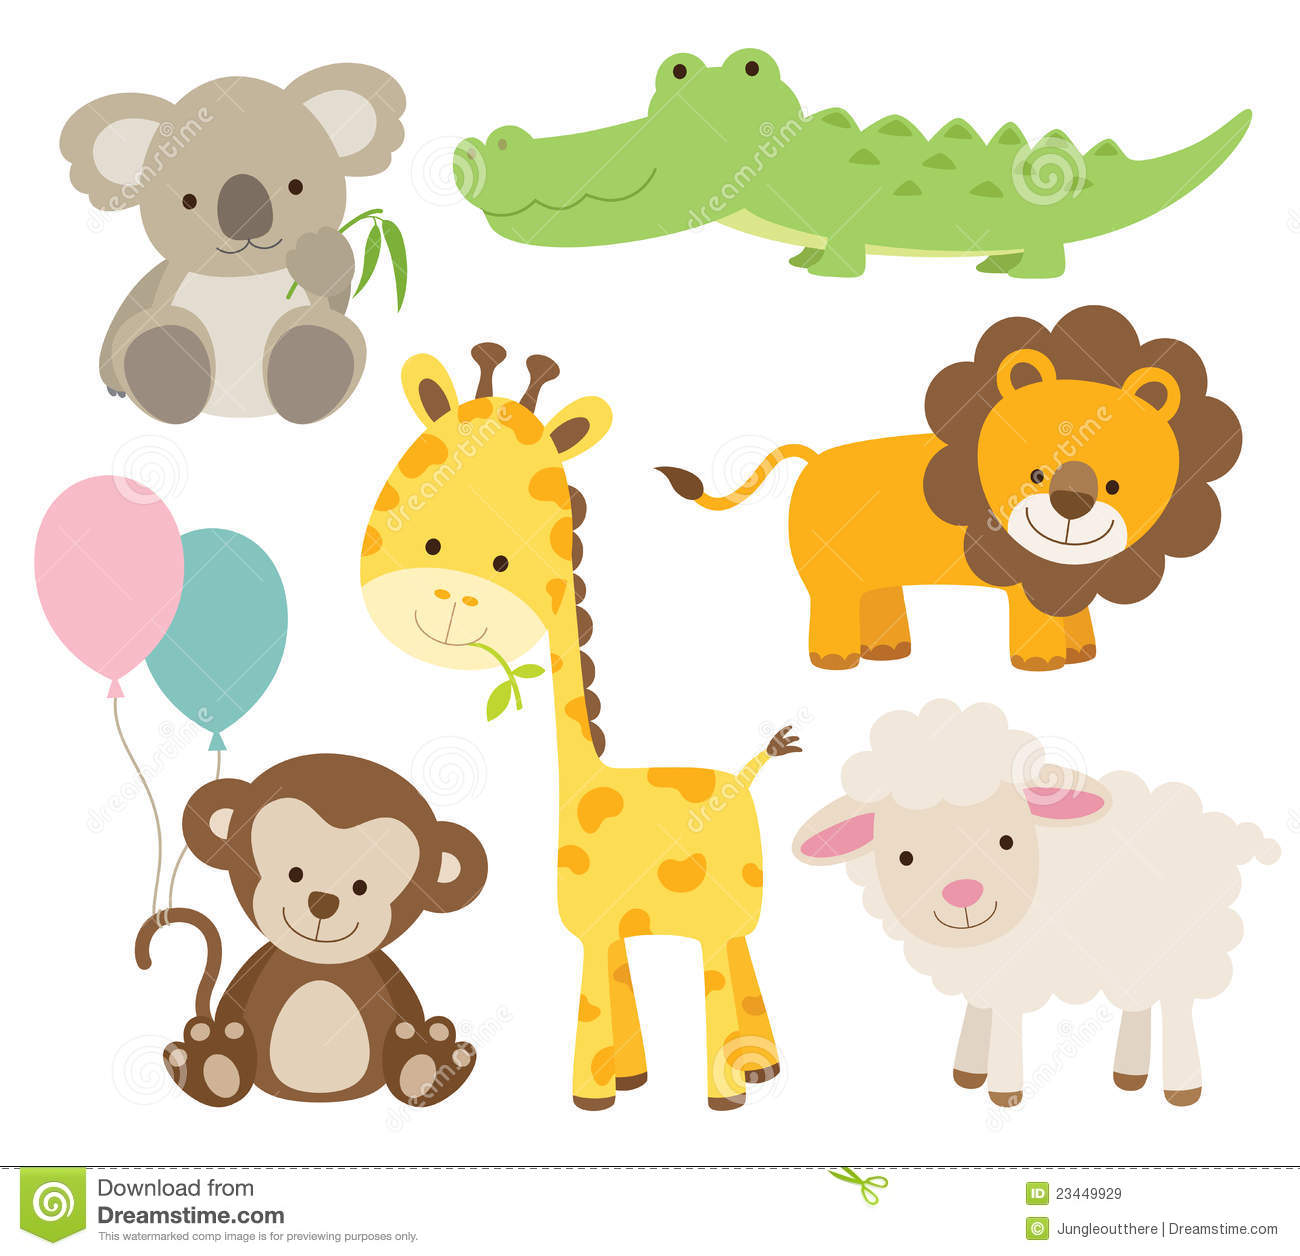 Royalty Free Stock Images Animal Set Image23449929 on Stock Illustration Farm Animals Their Babies Vector Set White